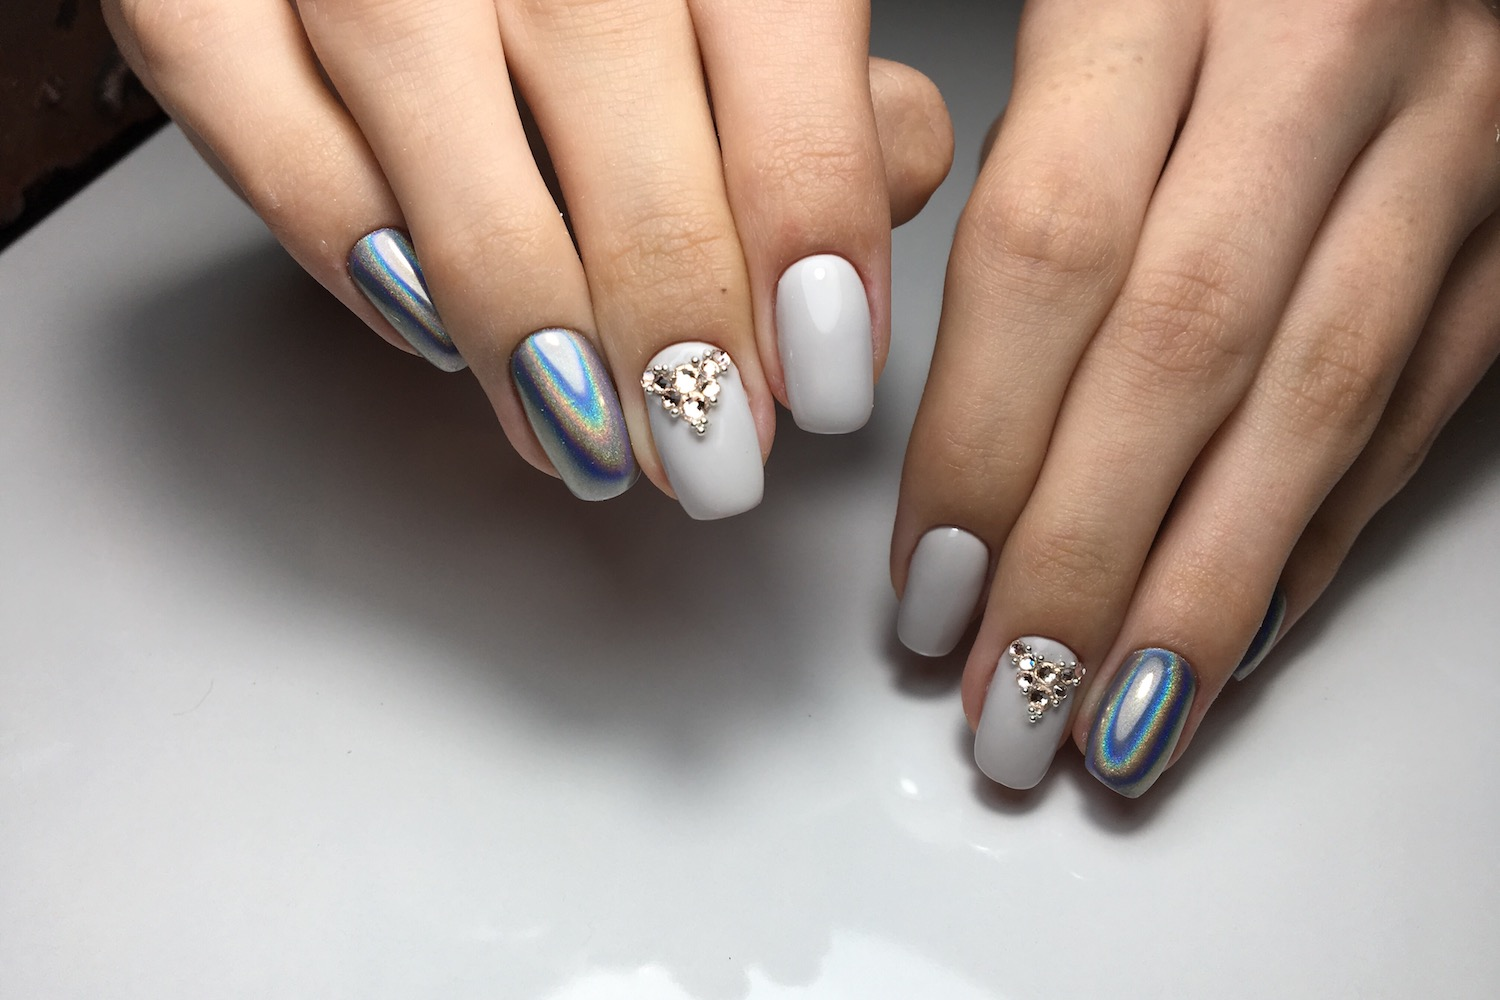 Which Nutrient Deficiencies Can Dry Nails Indicate?